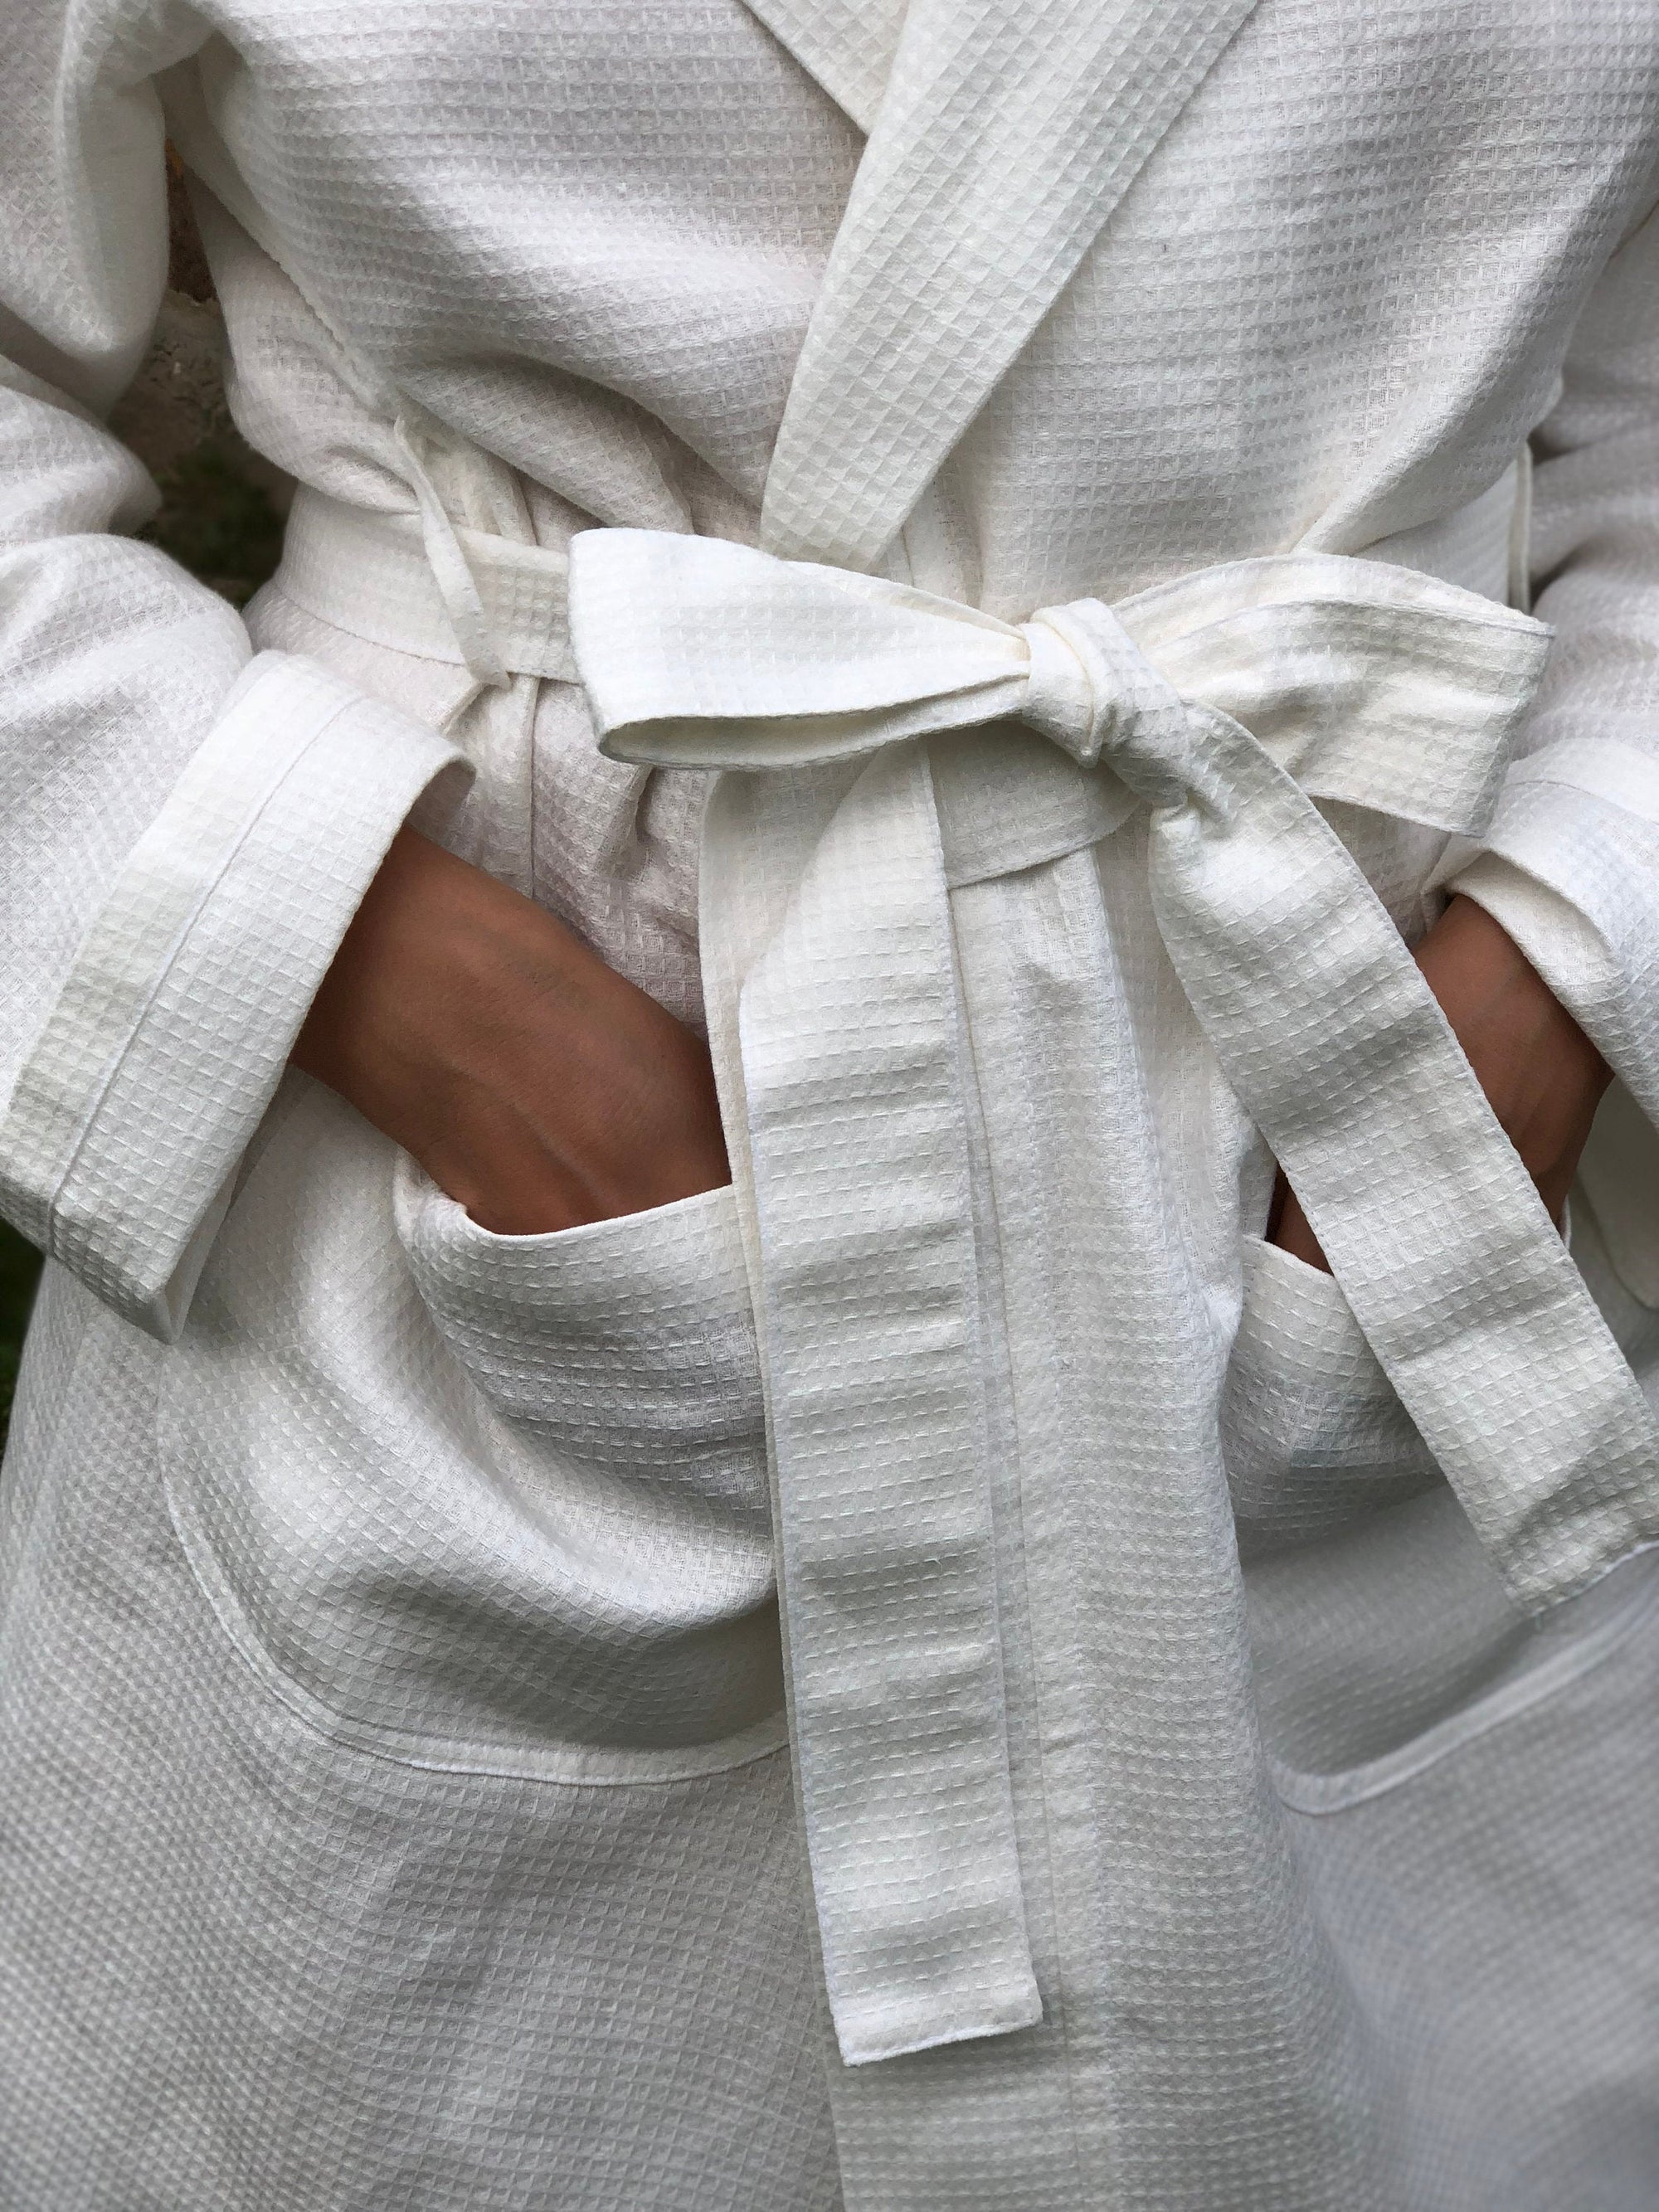 "White Linen robe ""Veronica"", Waffle Robe, Kimono robe, robe coverup, Hooded Robe, linen bath robe, morning dress, women robe"